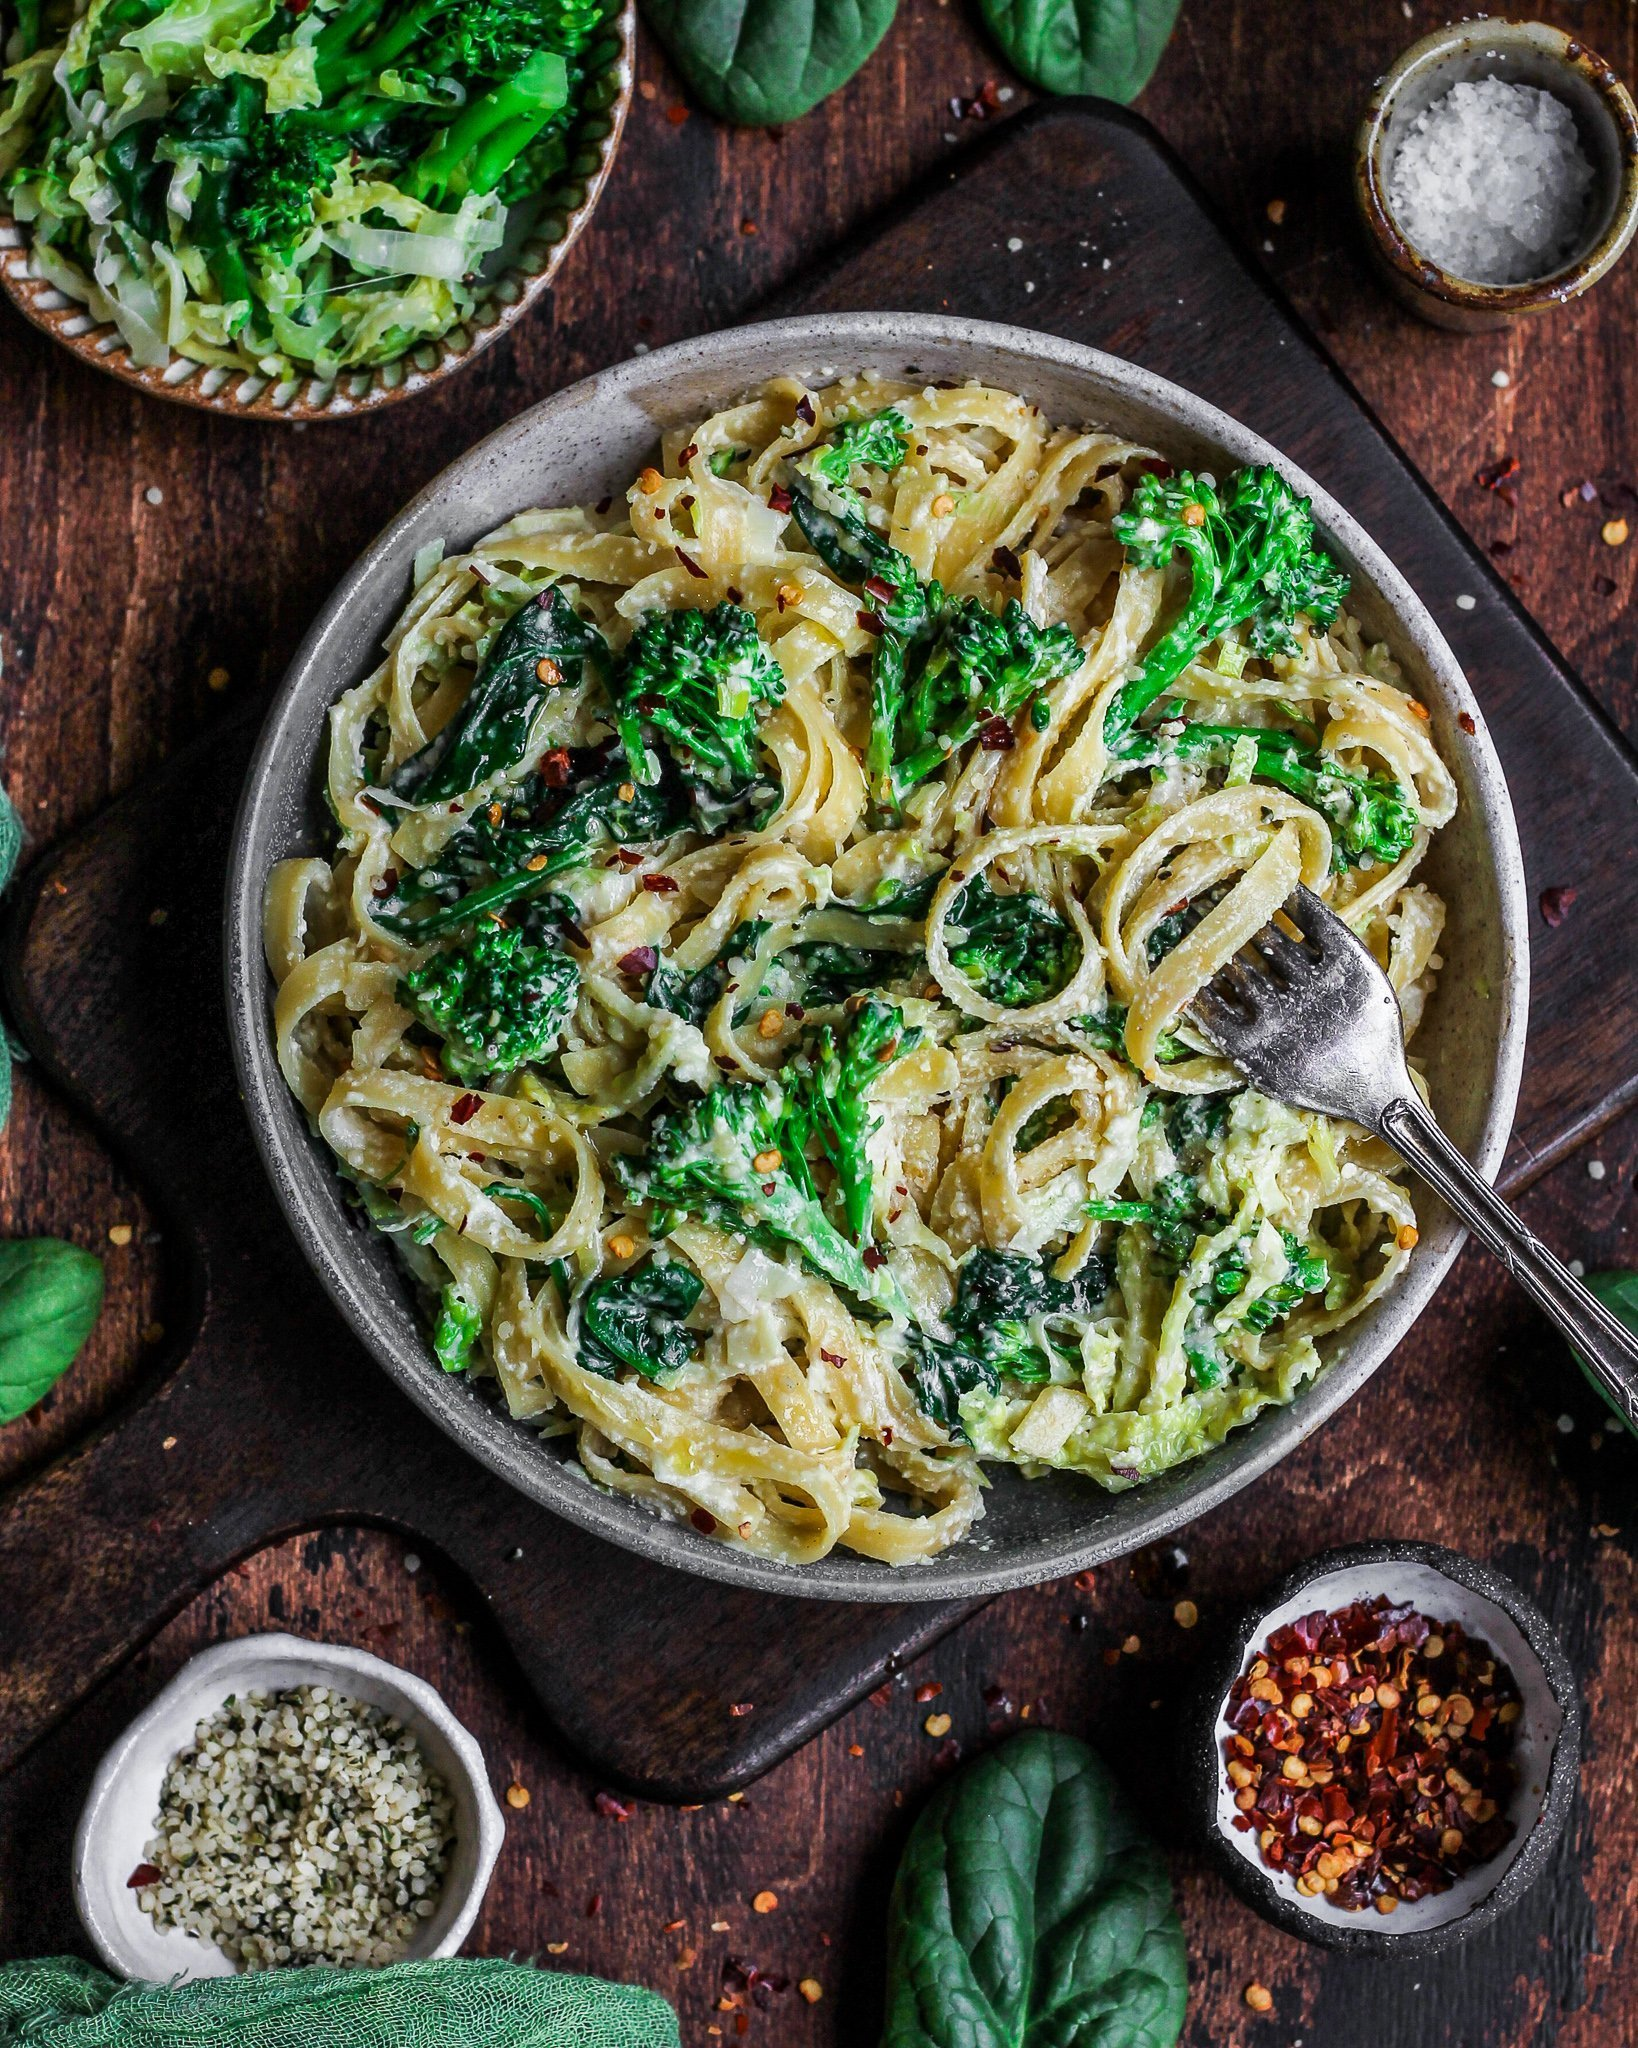 Winter Greens Cheesy Pasta